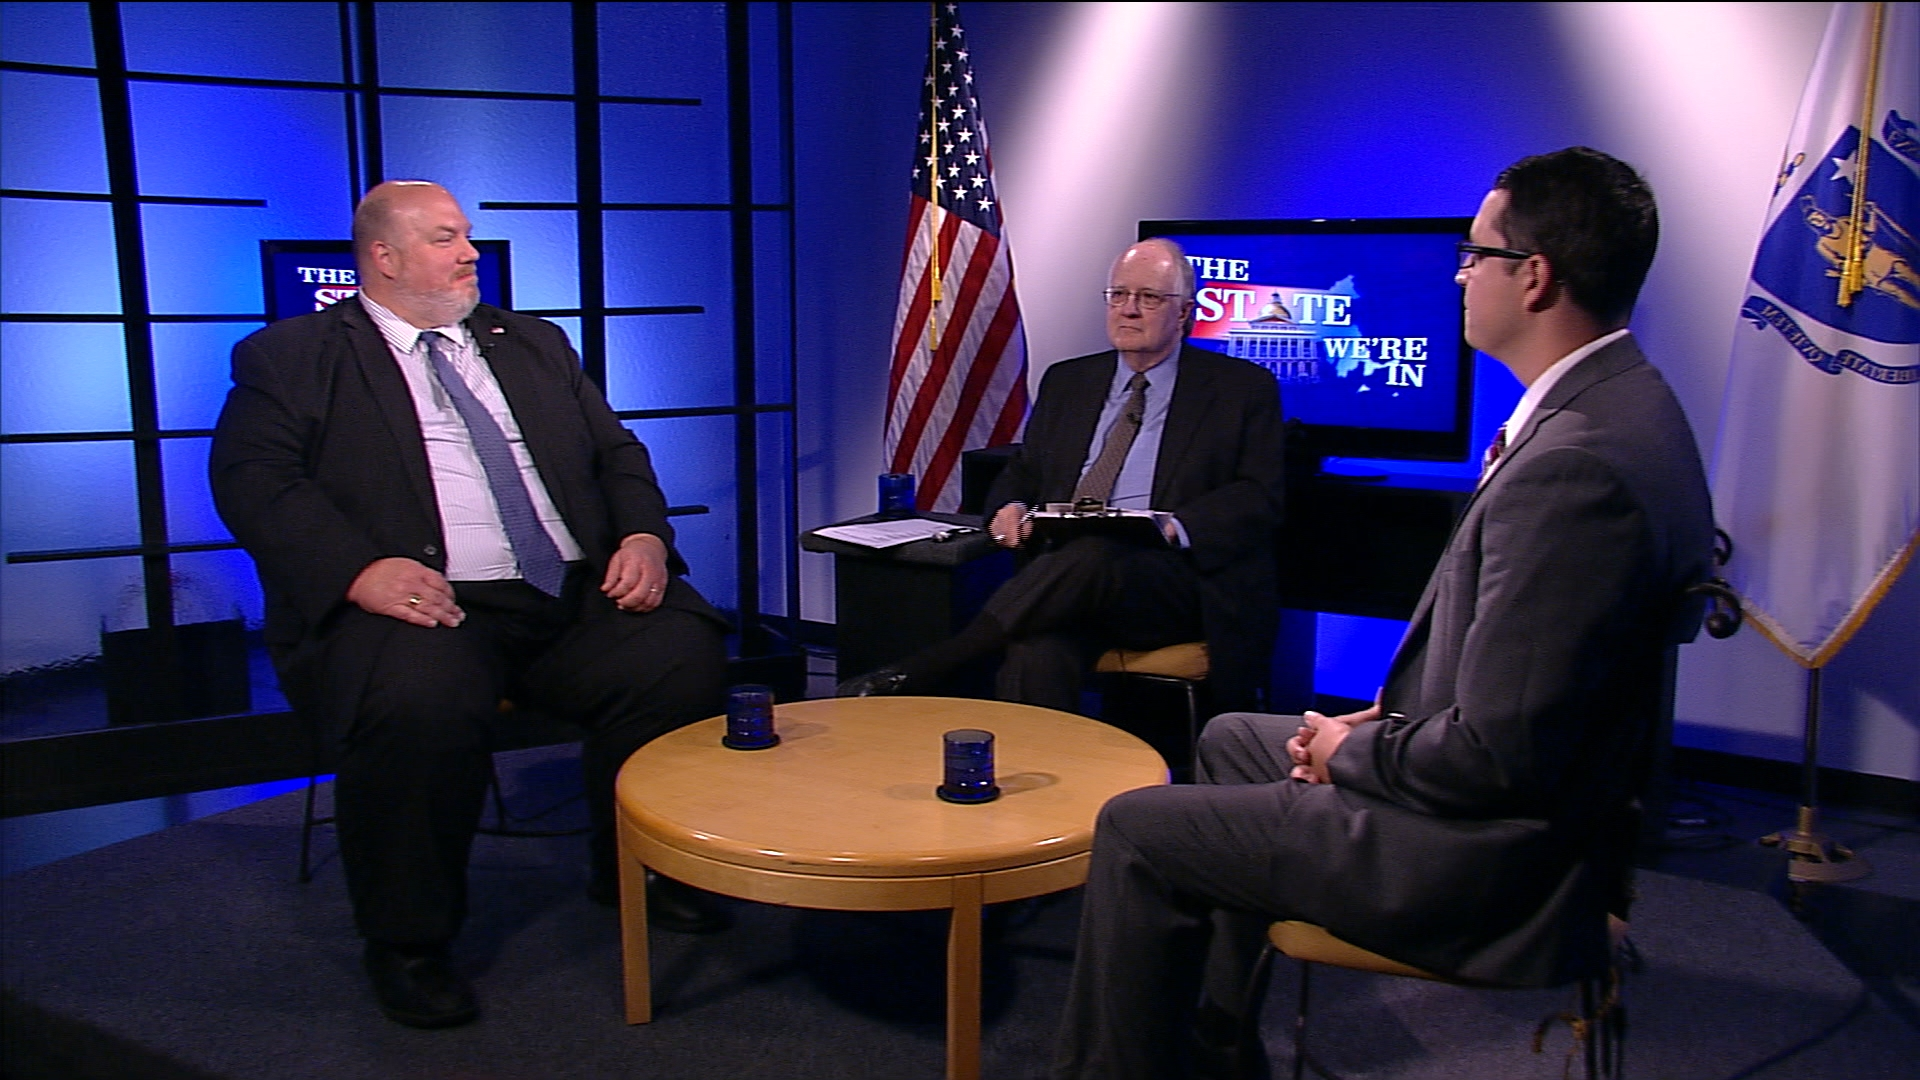 State Senator Don Humason and his challenger, J.P. Parker-O'Grady debate the key issues in their 2nd Hampden-Hampshire State Senate District race.